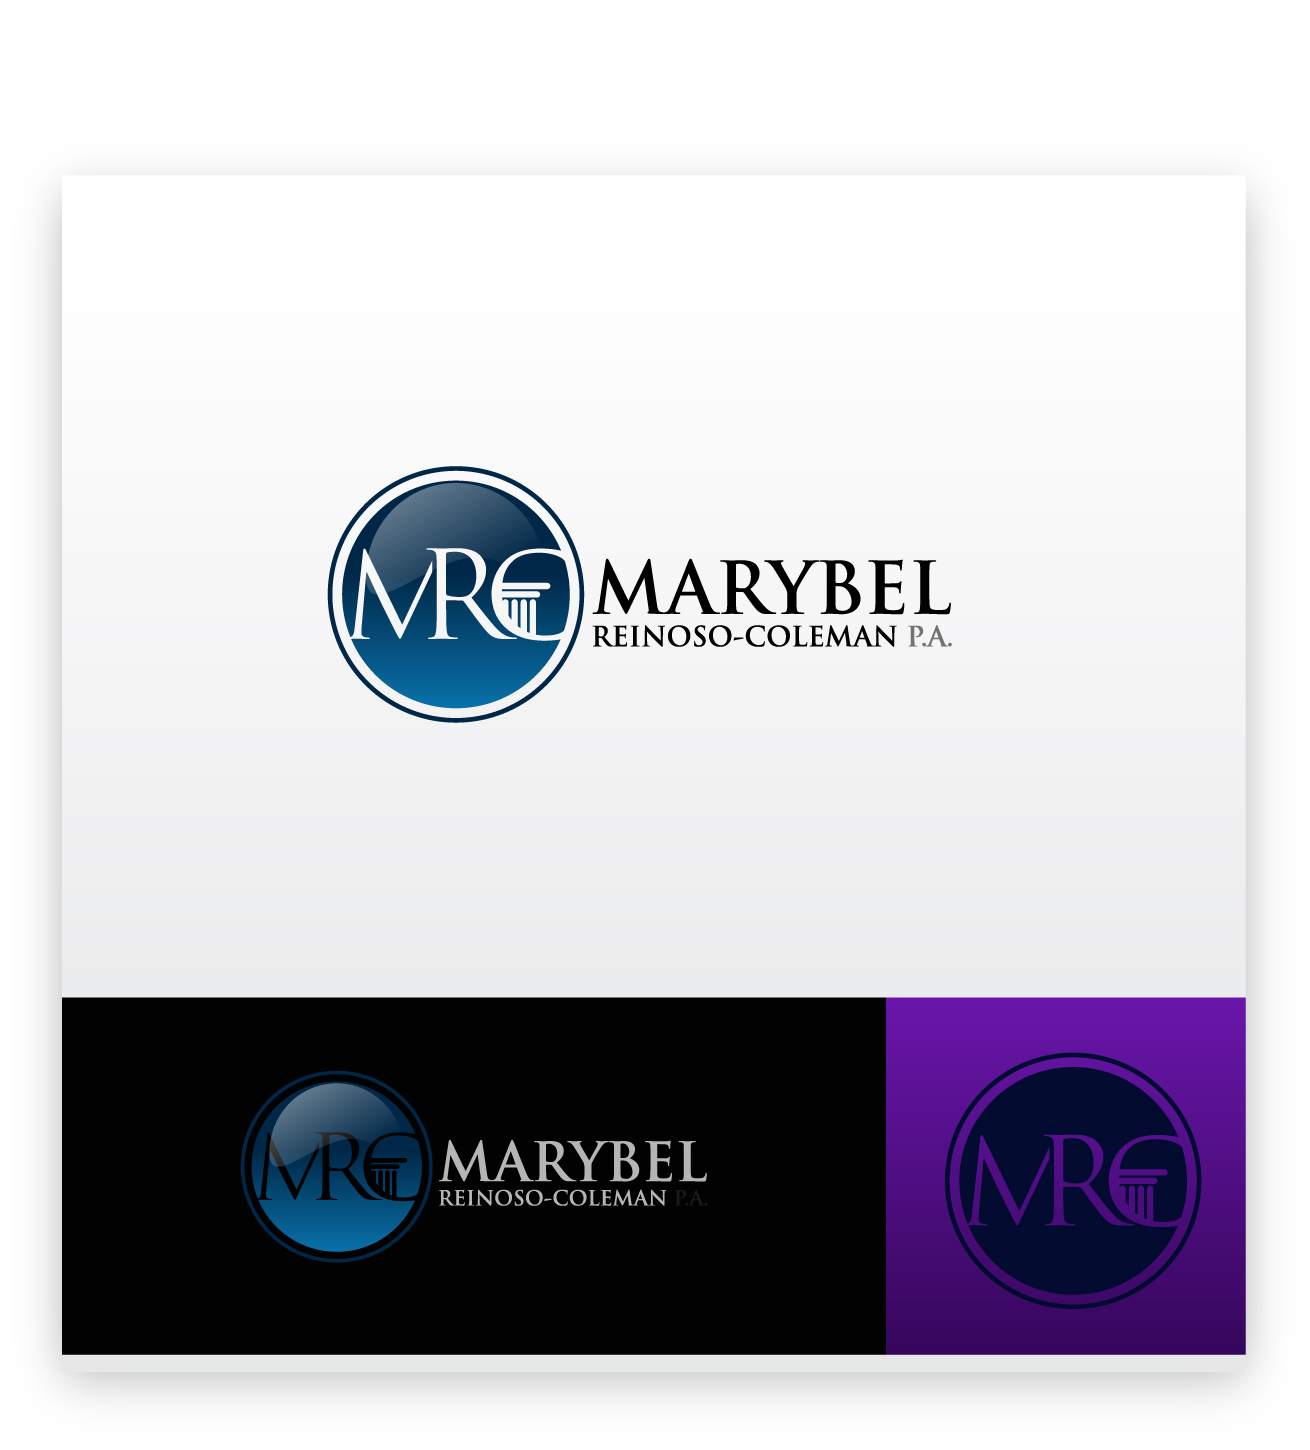 Logo Design by zoiDesign - Entry No. 47 in the Logo Design Contest Creative Logo Design for Marybel Reinoso Coleman P.A..